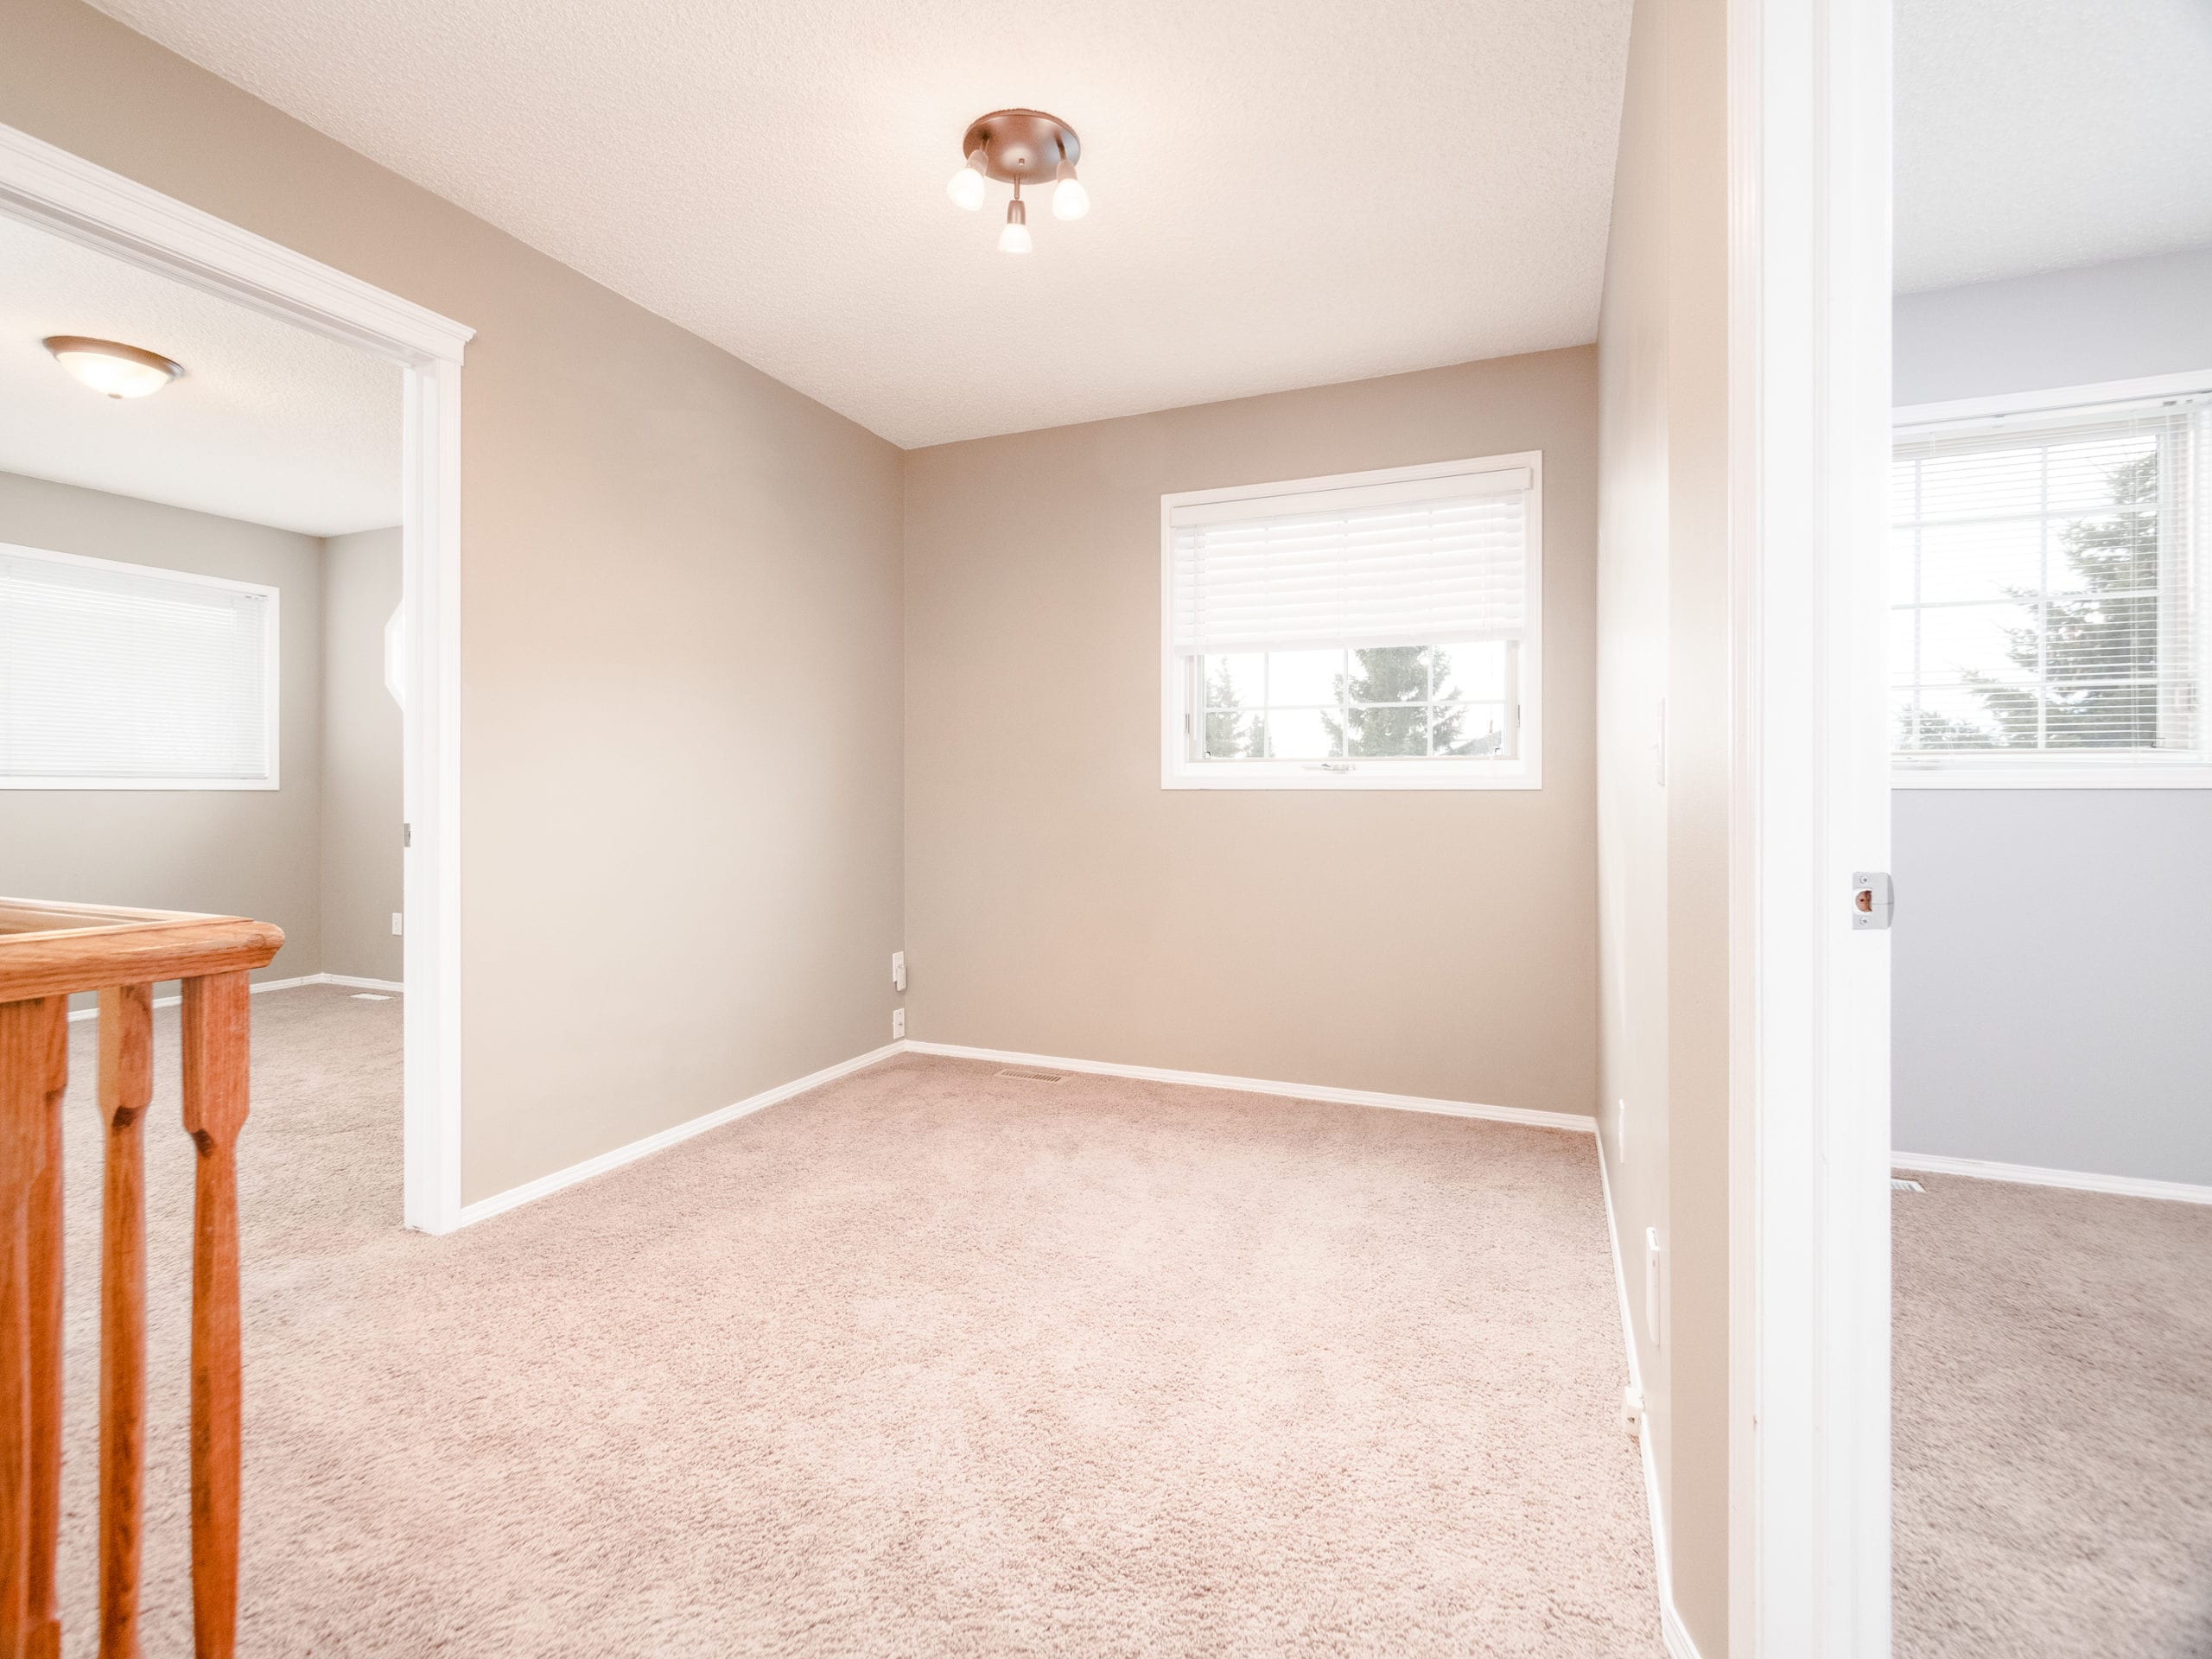 Hello Gorgeous - 143 Woodside Road NW, Airdrie AB. - Tara Molina Real Estate (35 of 54)